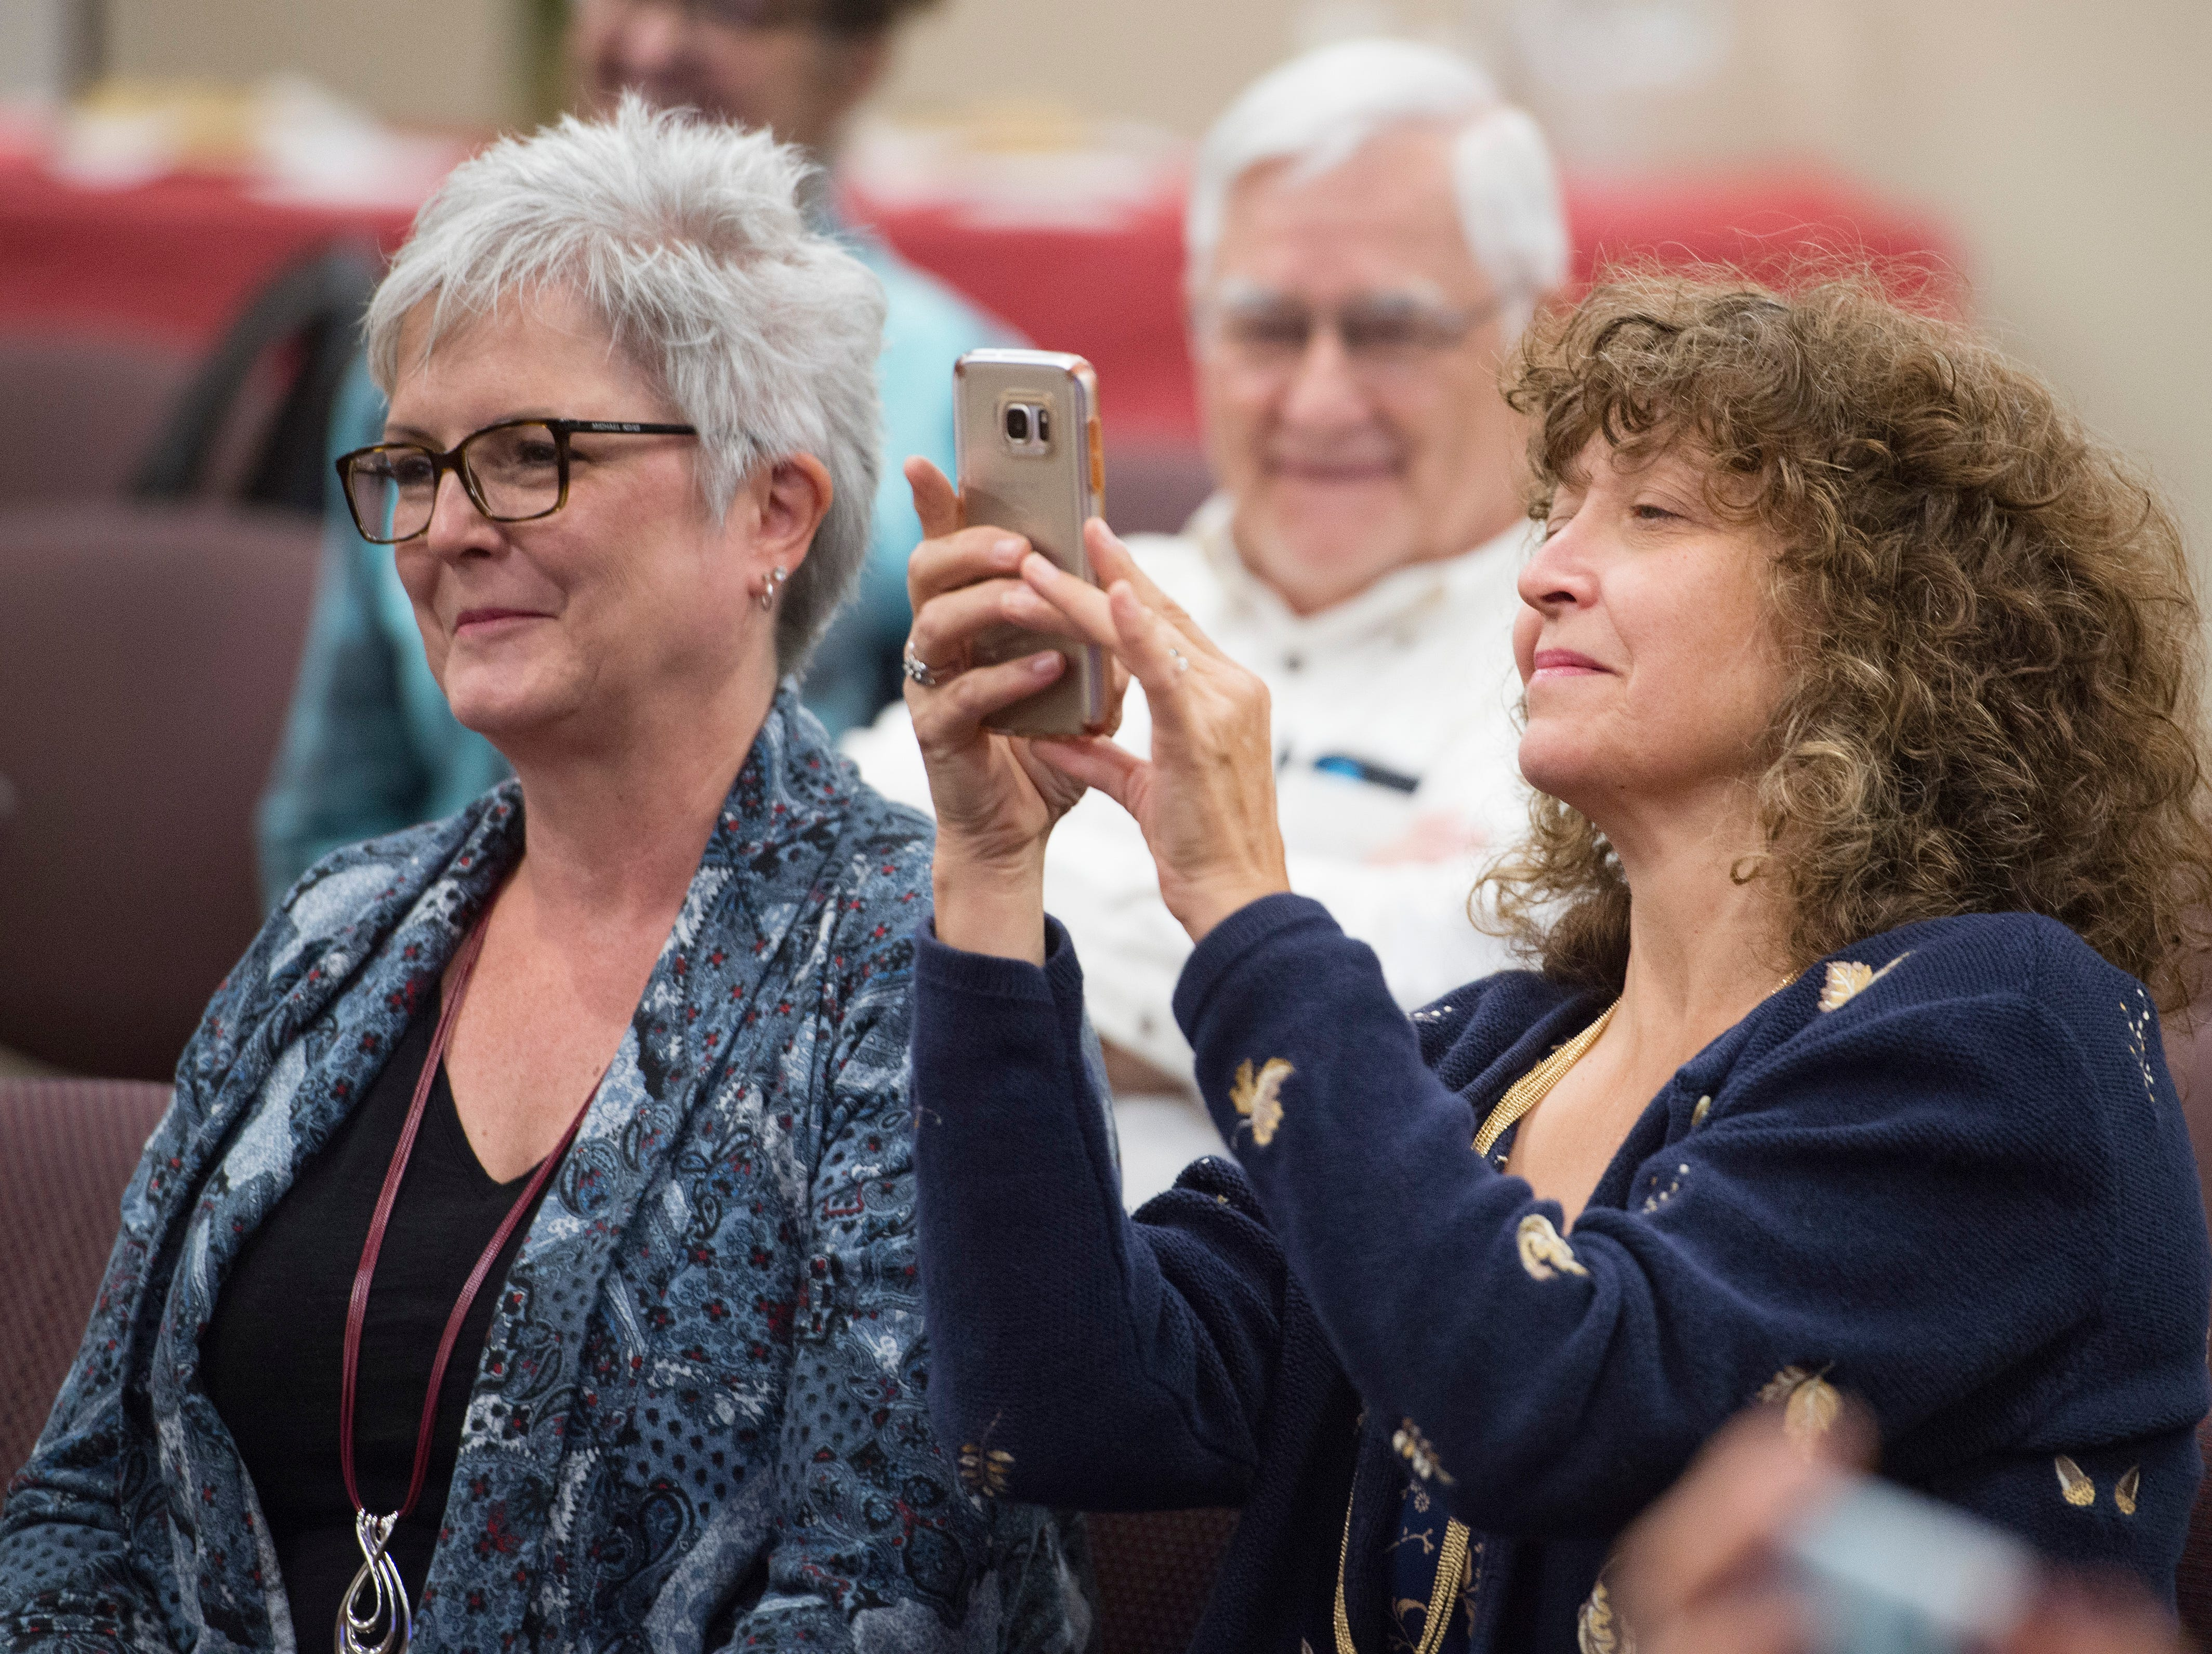 Jeannette Gaiter takes a photo with her cell phone as she sits next to Mary Dougherty as her husband, Sean, is sworn in as Larimer County Commissioner on Friday, September 28, 2018. Dougherty was appointed to the position in the vacancy left by Lew Gaiter III after his death on September 18.